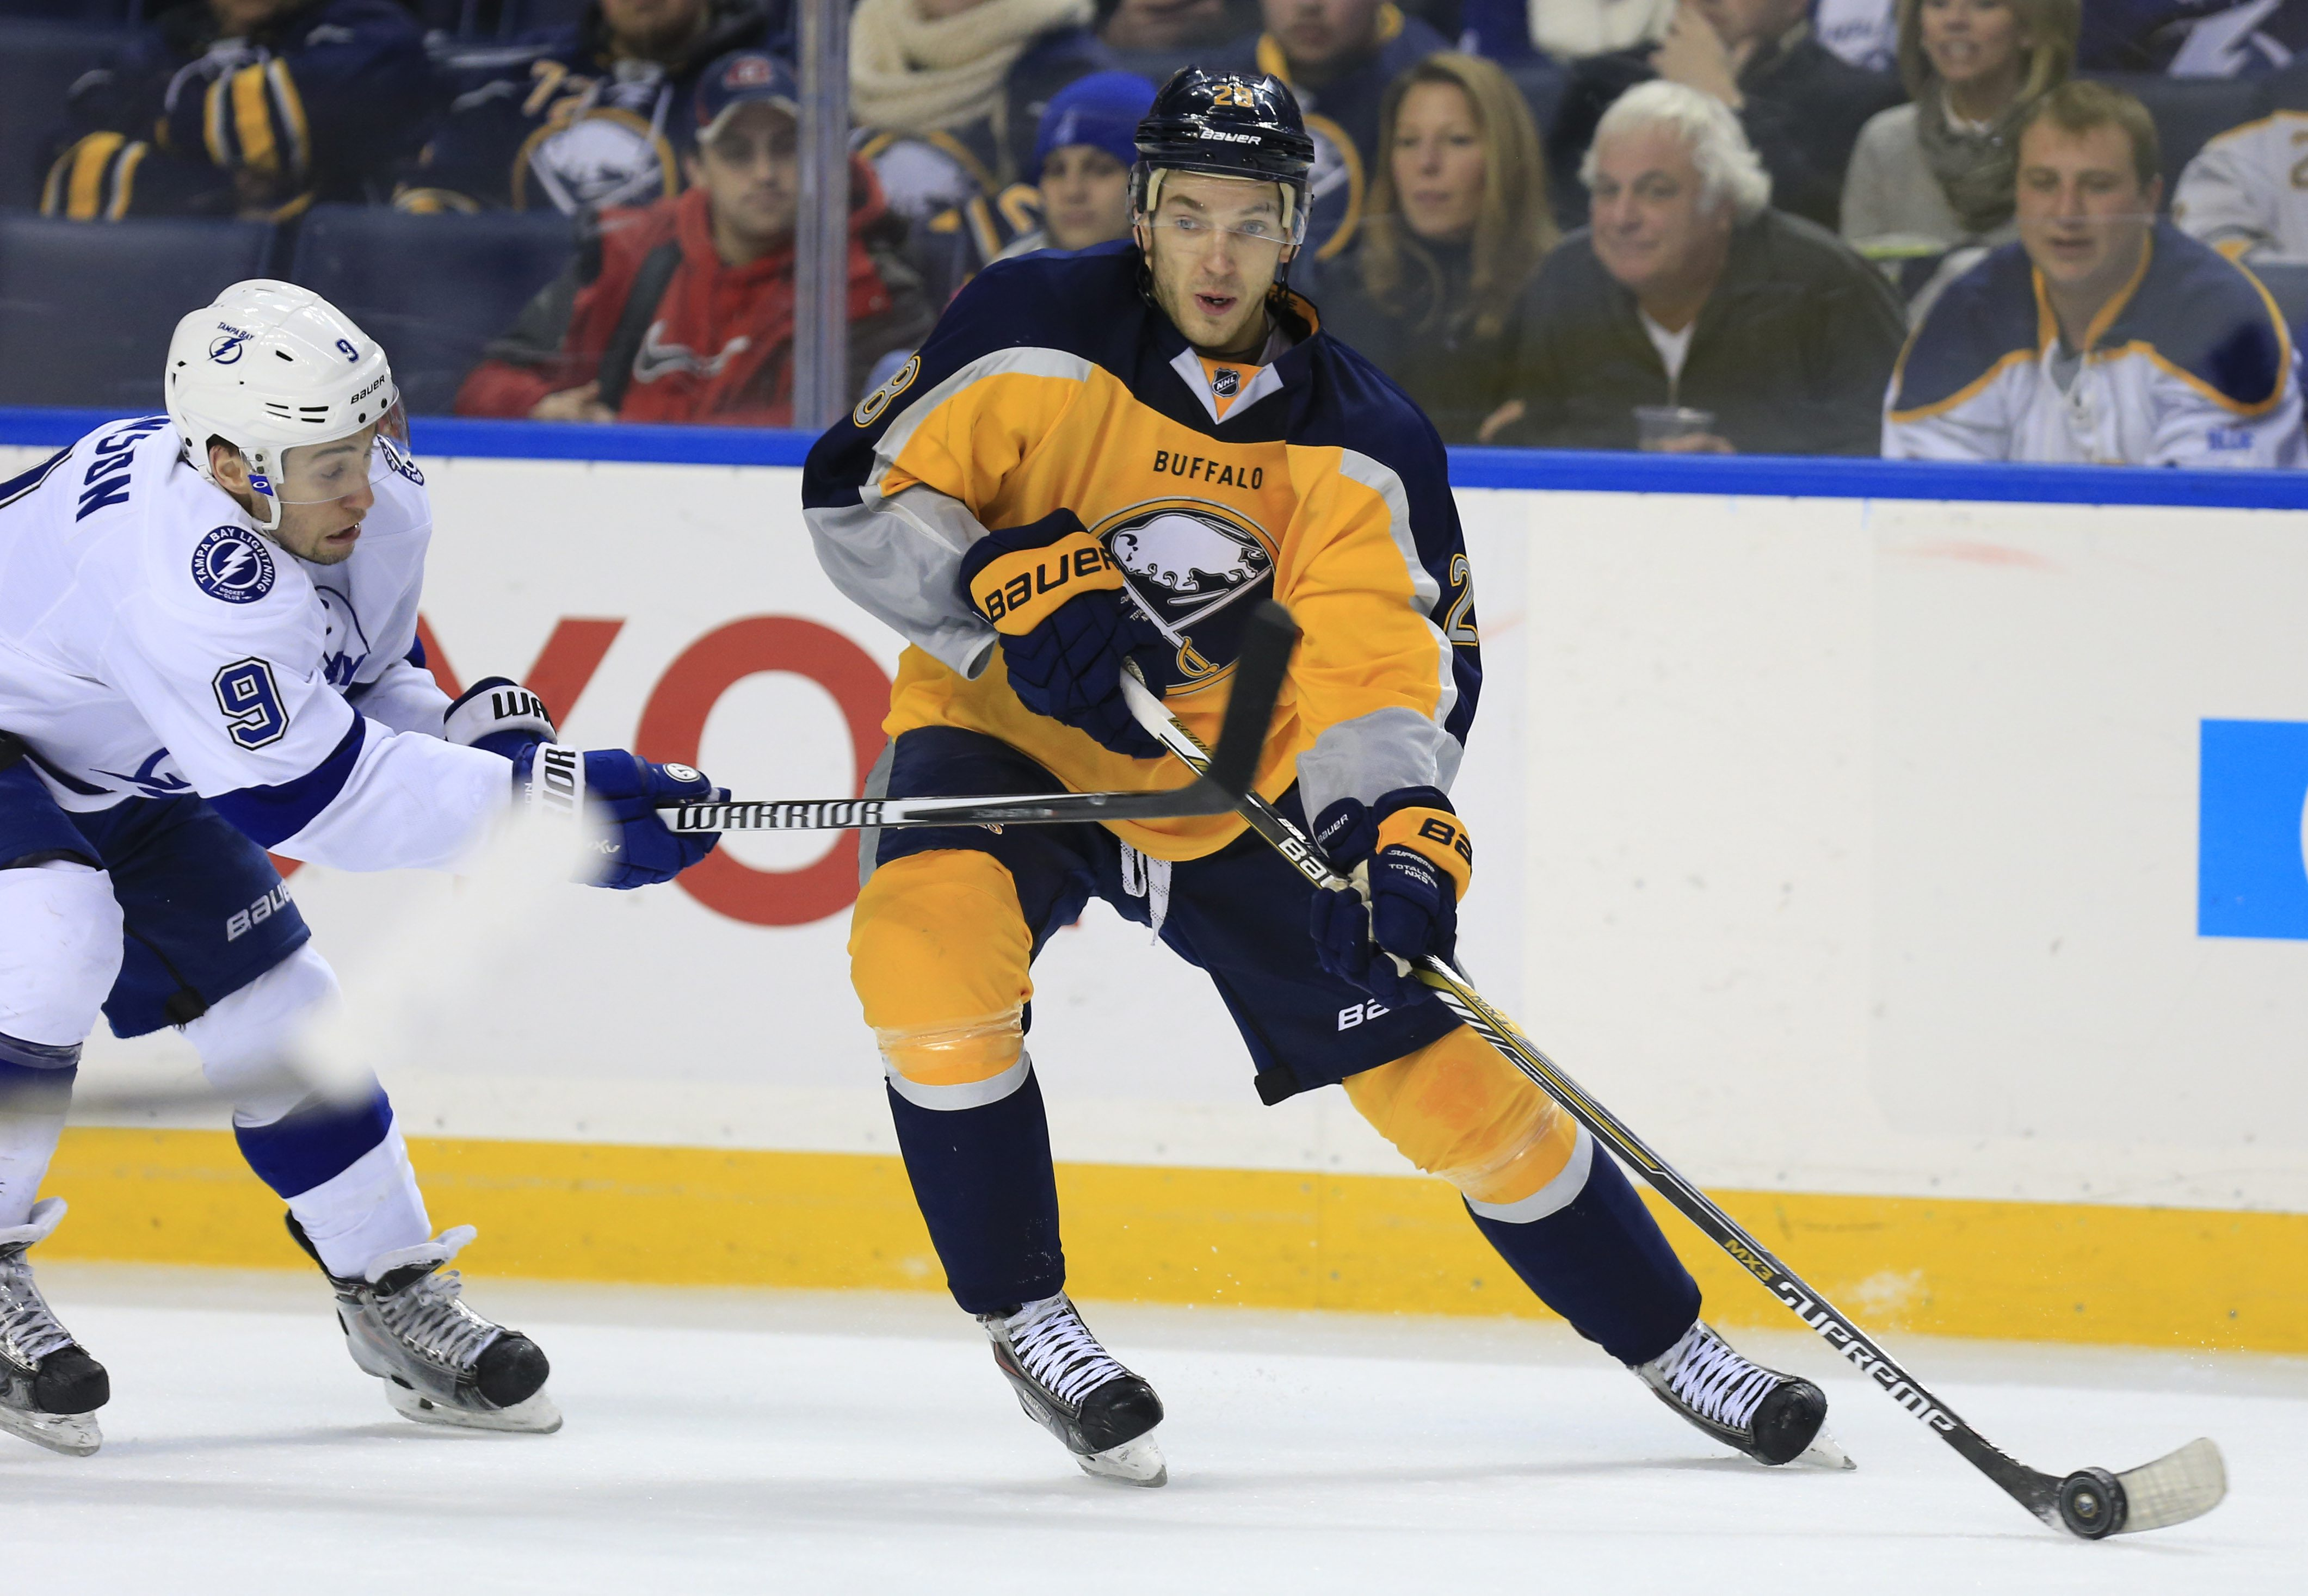 Sabres' Zemgus Girgensons made a major leap during his second full season as a pro. He finished second on the team in goals (15) and fourth in points (30) despite missing 21 games. He has the drive and skill to play in every situation.